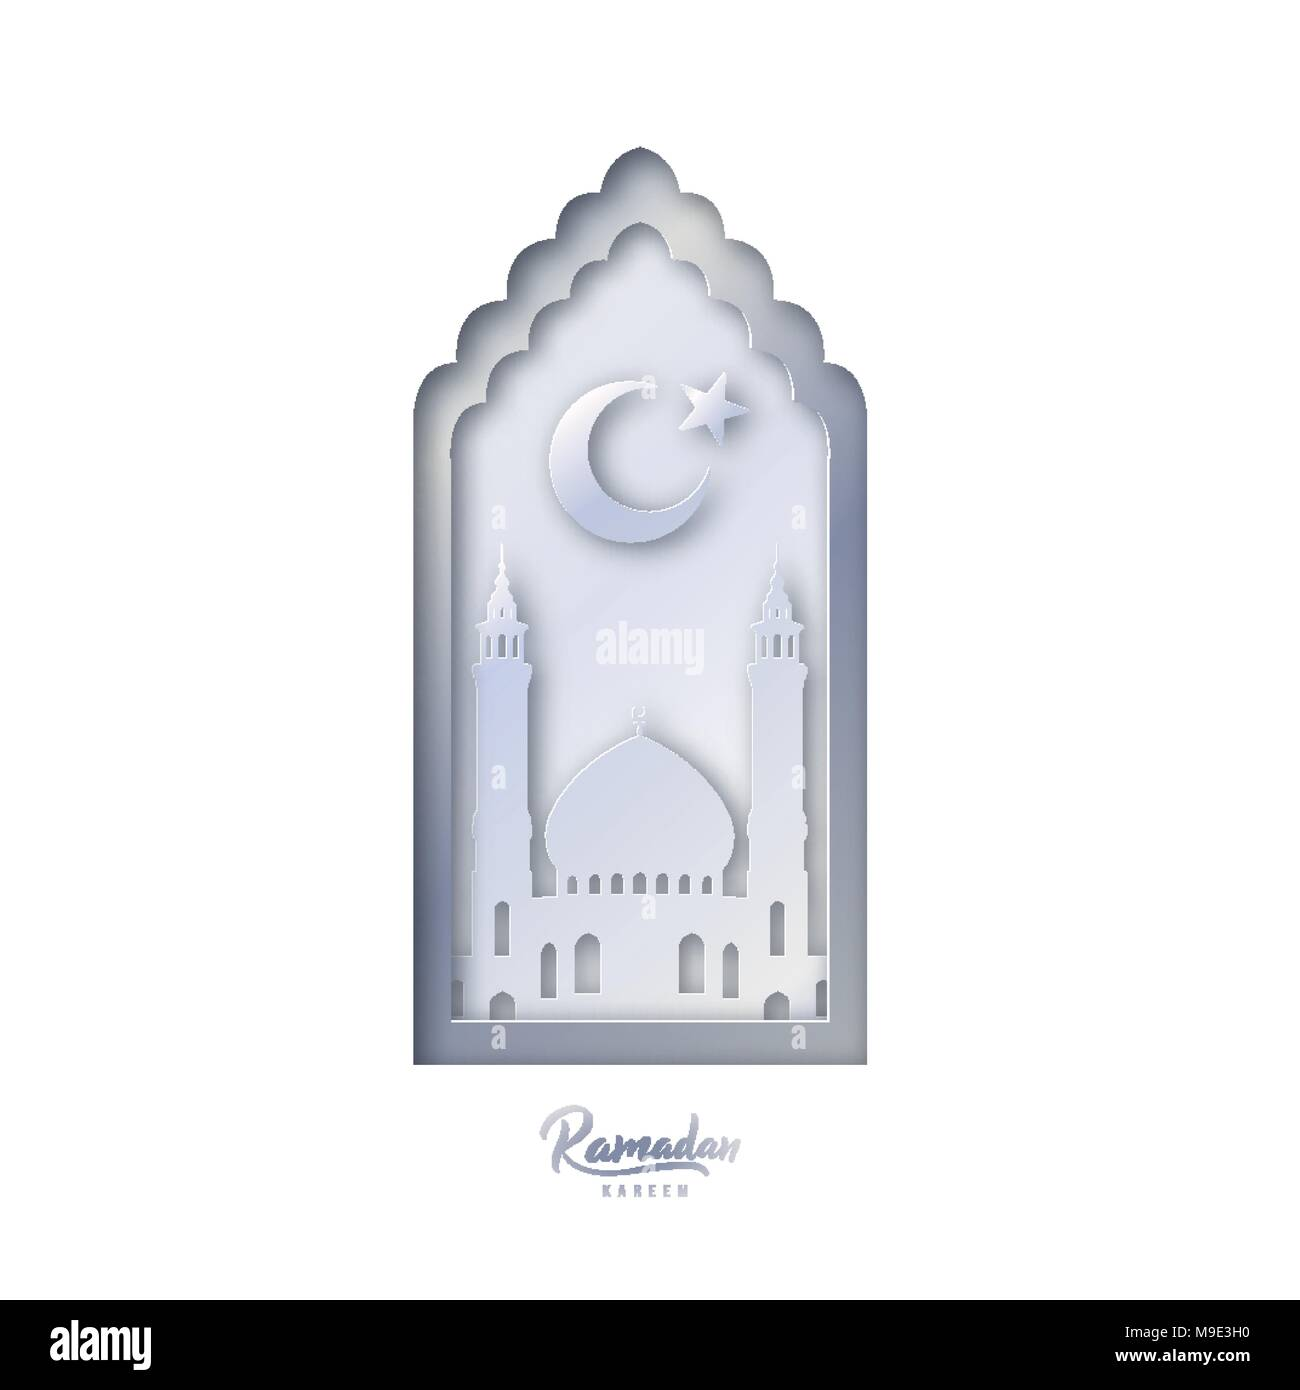 Islamic decorative design template mosque with crescent moon and islamic decorative design template mosque with crescent moon and star on white background in paper cut style ramadan kareem greeting card banner maxwellsz